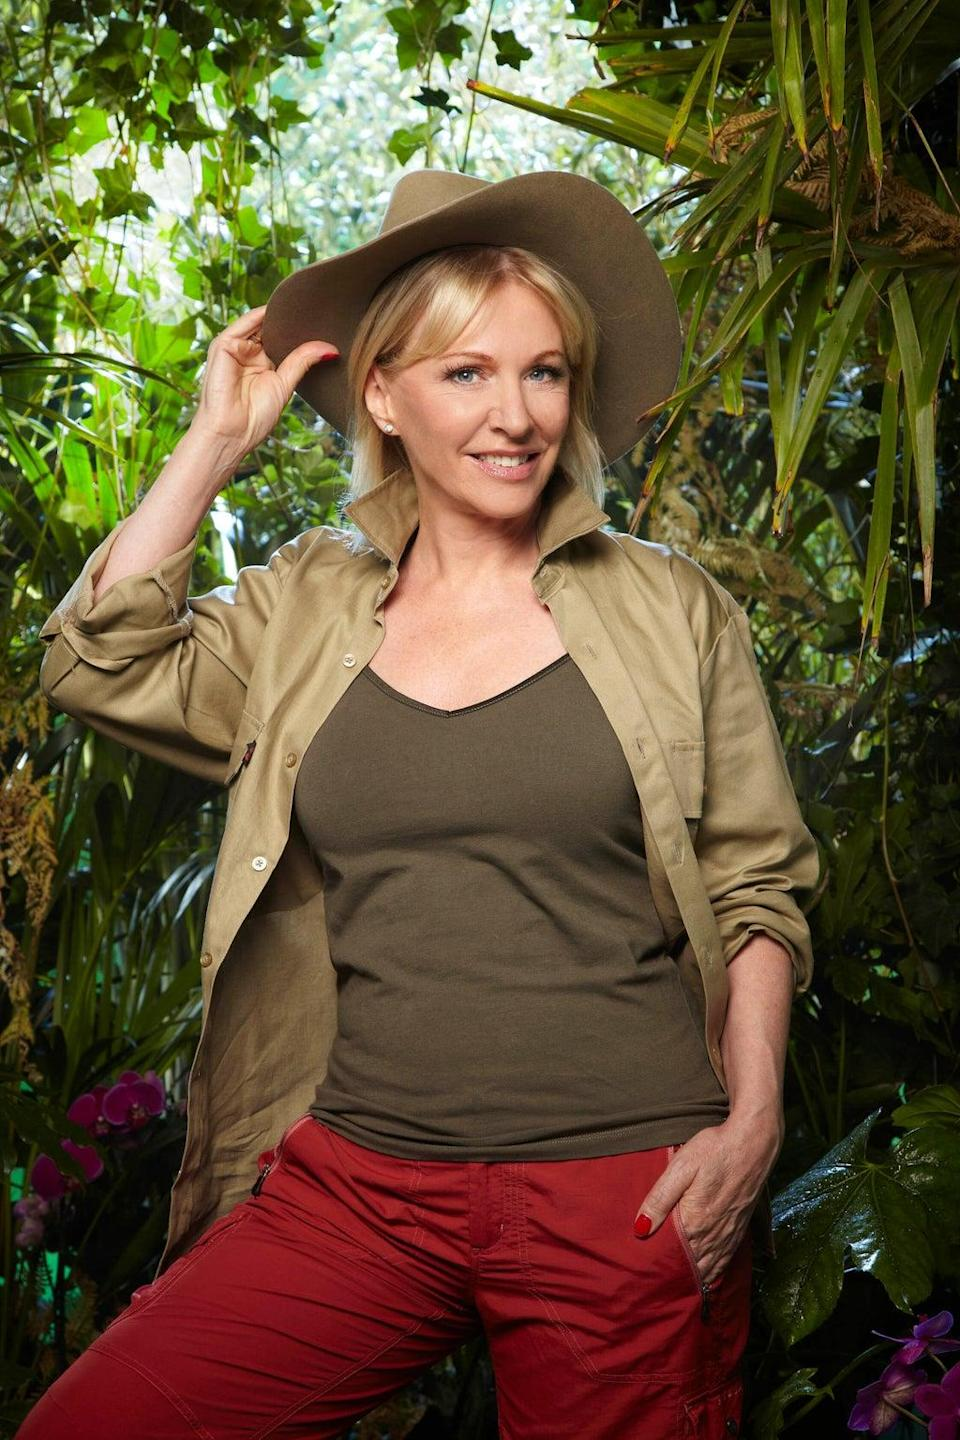 Undated handout photo issued by ITV of I'm A Celebrity…Get Me Out Of Here! contestant Nadine Dorries (ITV/PA) (PA Media)